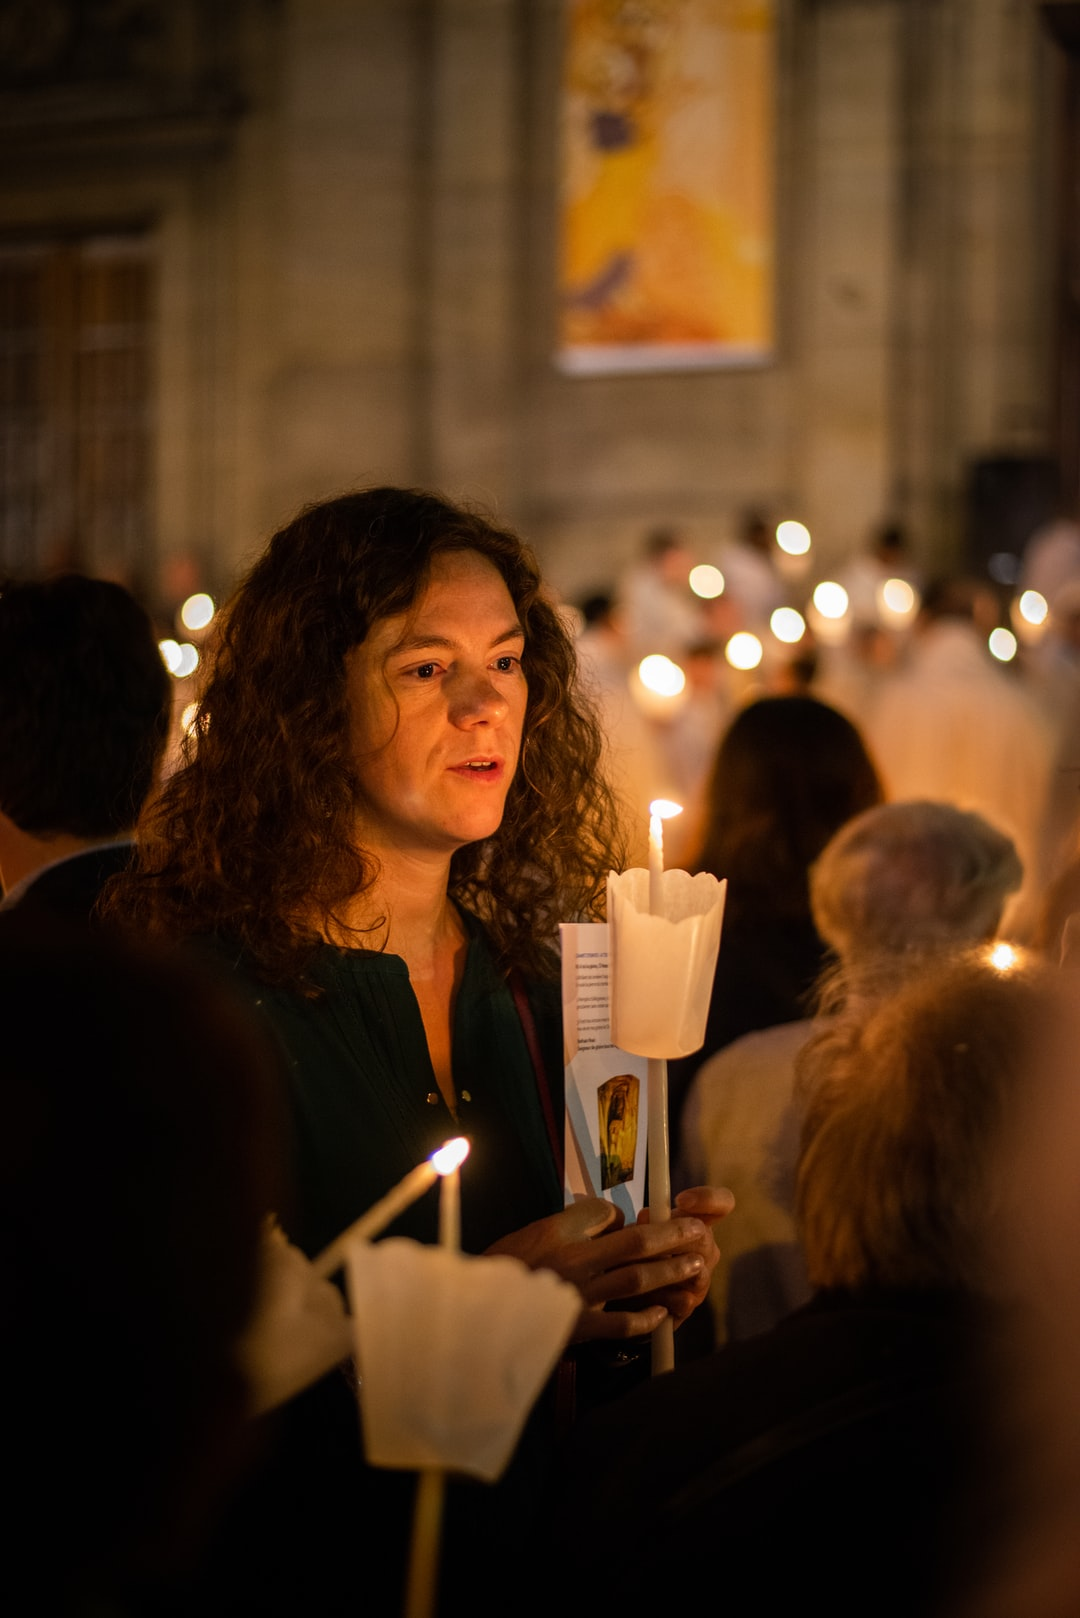 Believer holding candle at evening church ceremony in Paris.